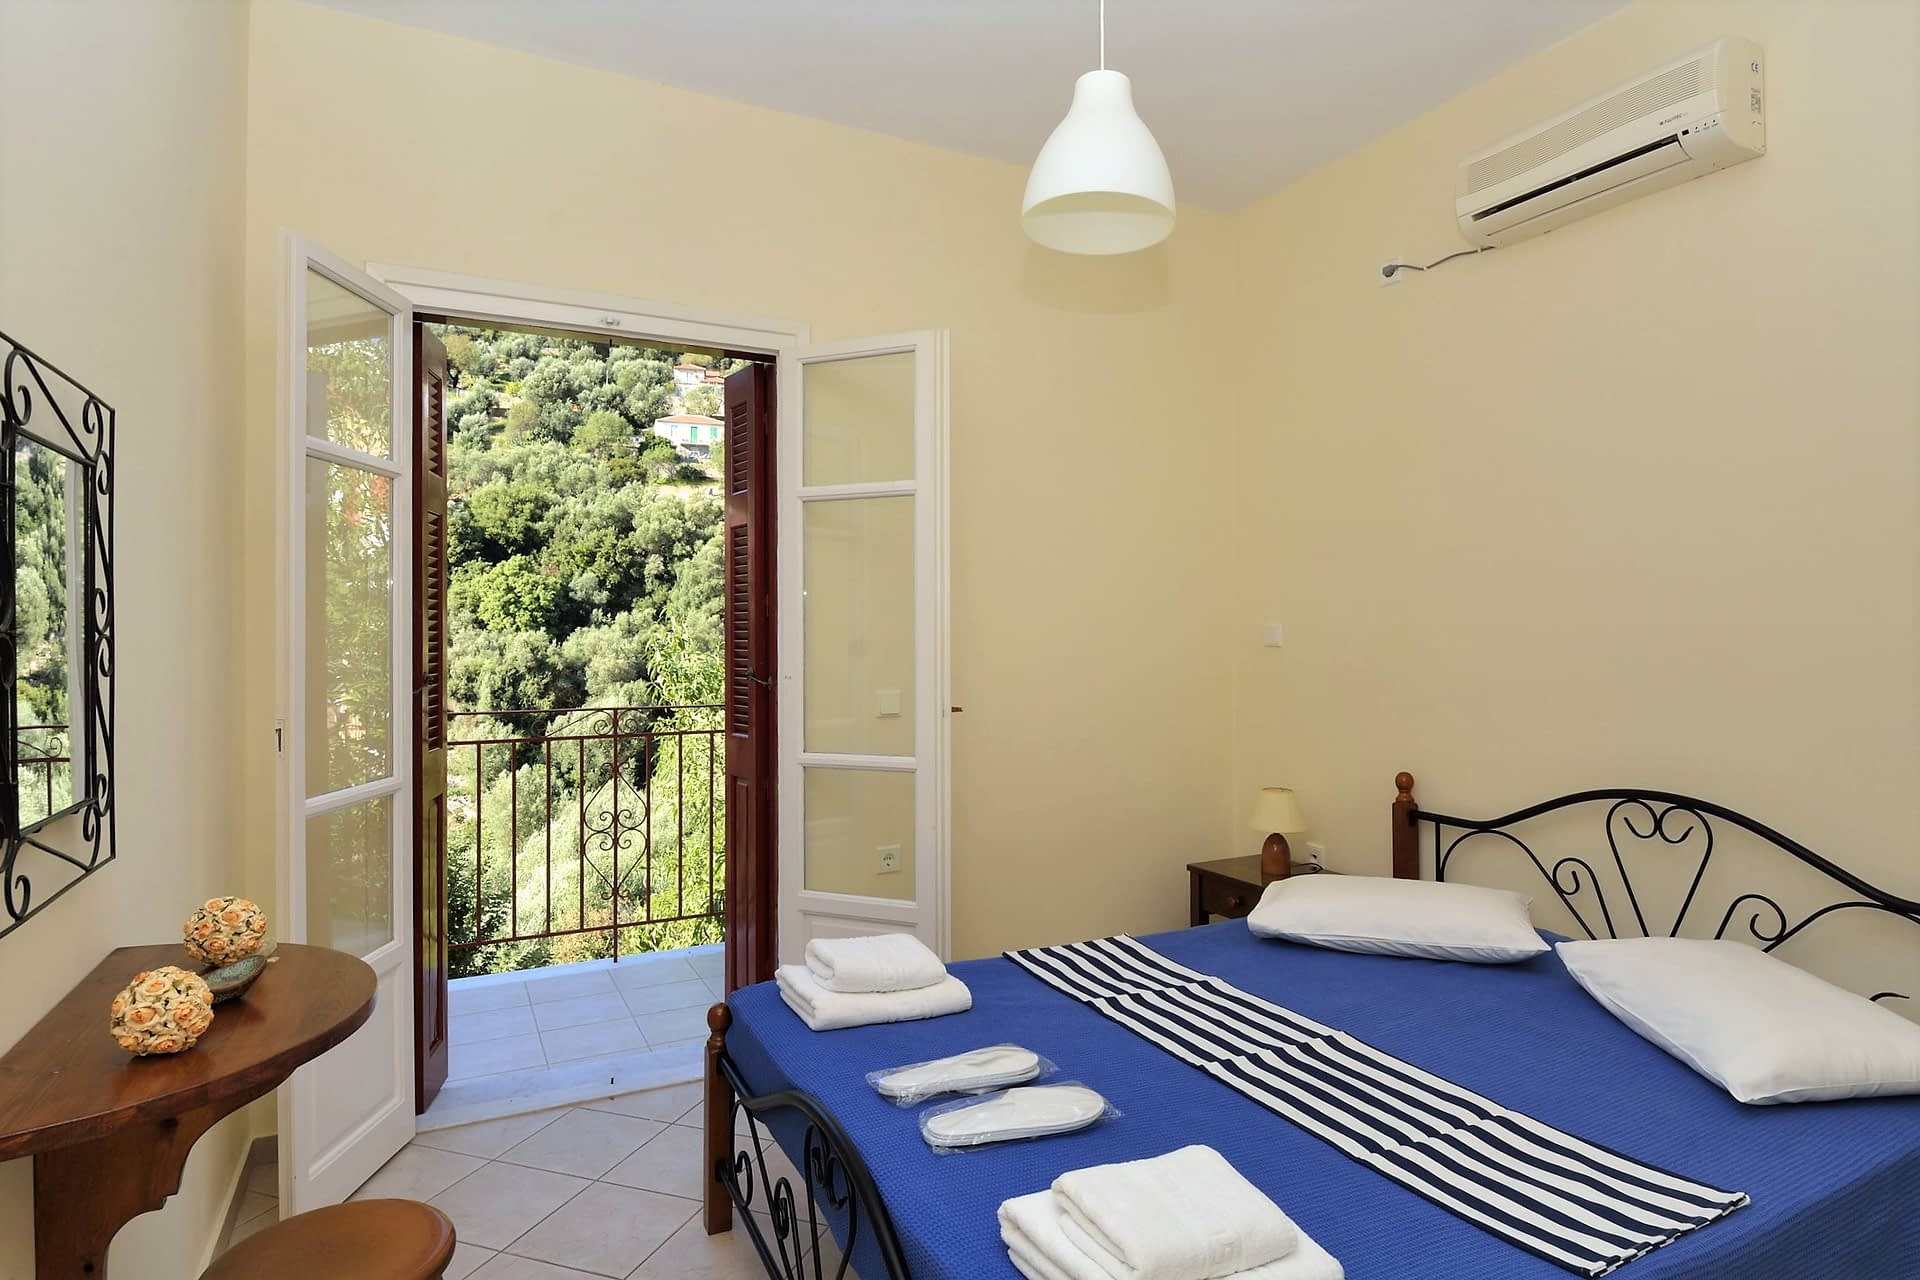 Interior bedroom from holiday apartments Kioni, Ithaca Greece